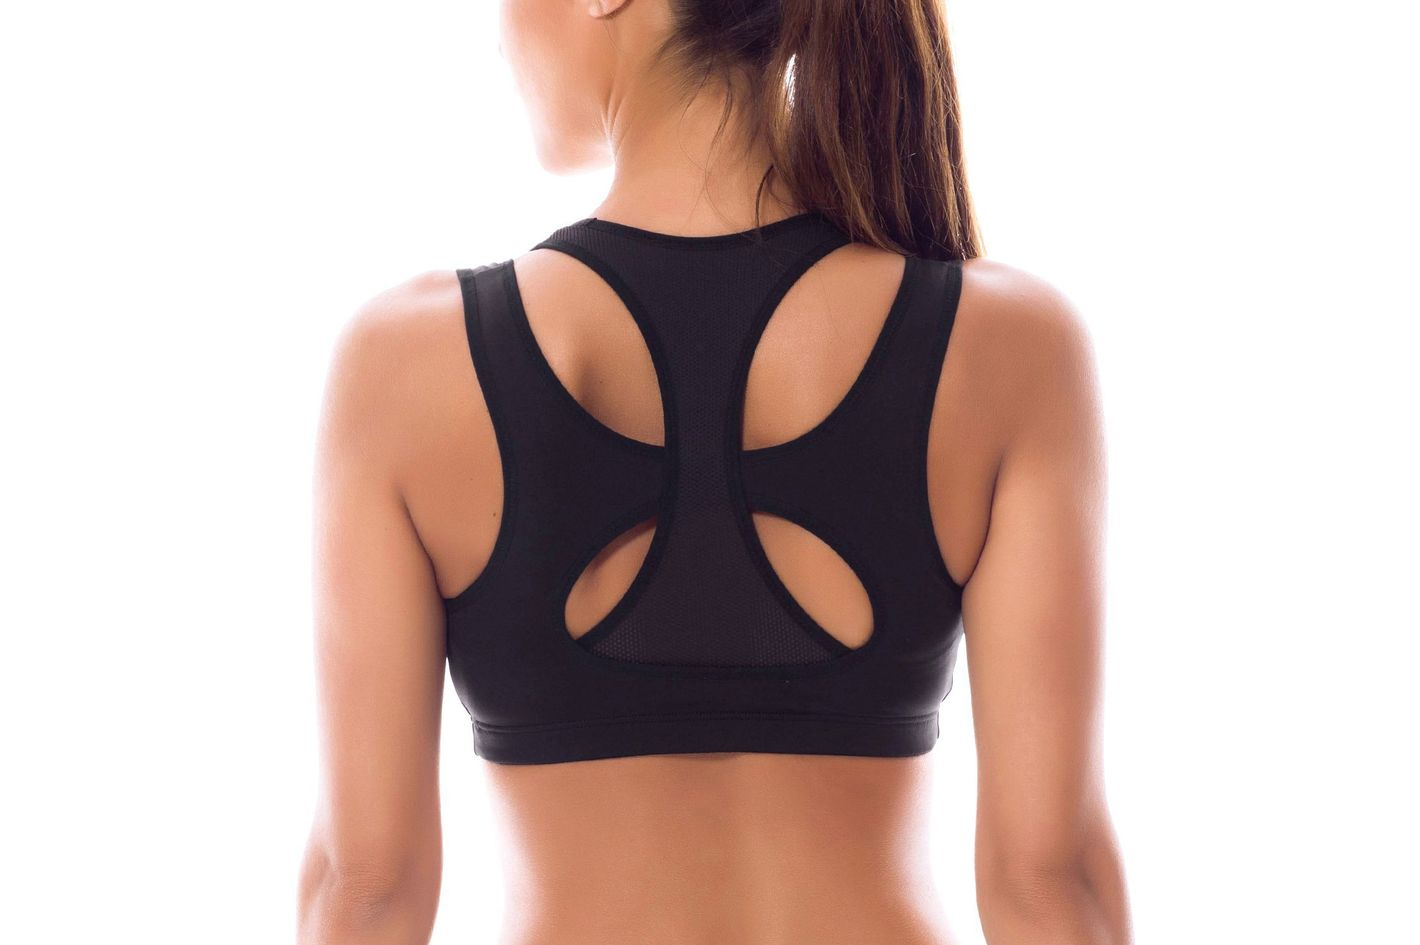 SYROKAN Women s High Impact Support Wirefree Workout Racerback Sports Bra  Top aa9324567